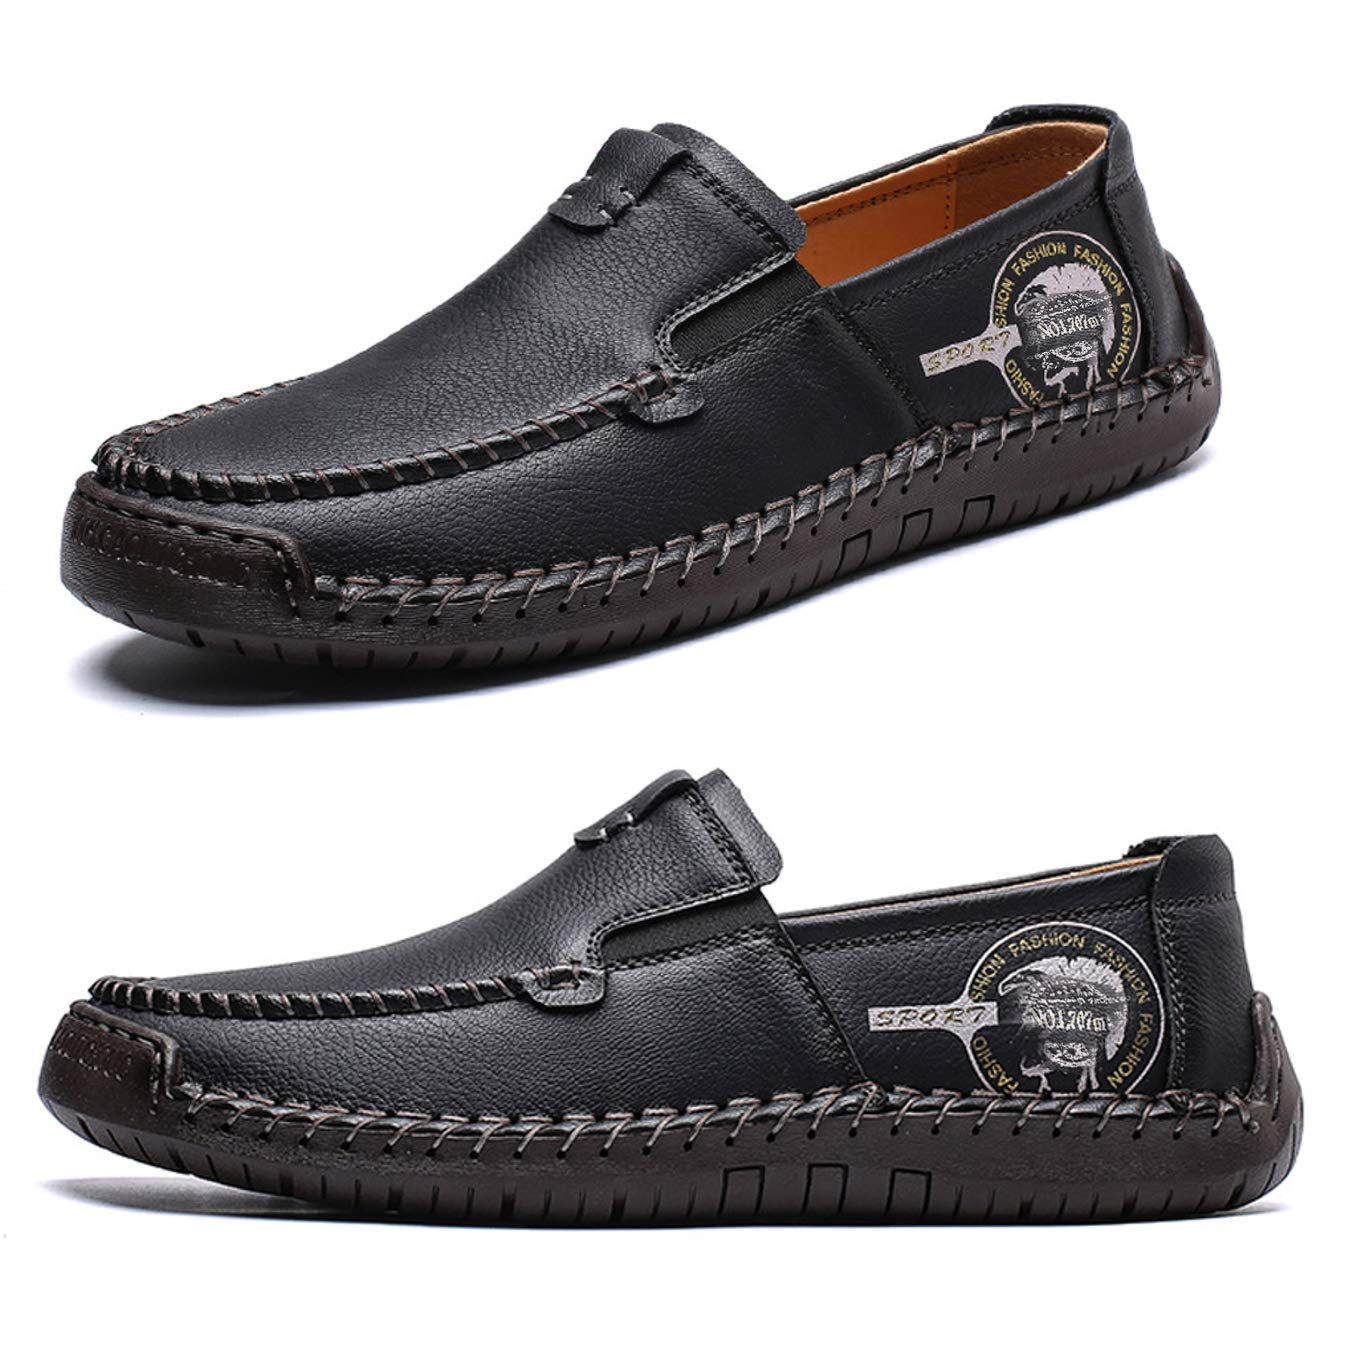 Fashion Men/'s Leather Casual Zipper Shoes Breathable Antiskid Loafers Moccasins